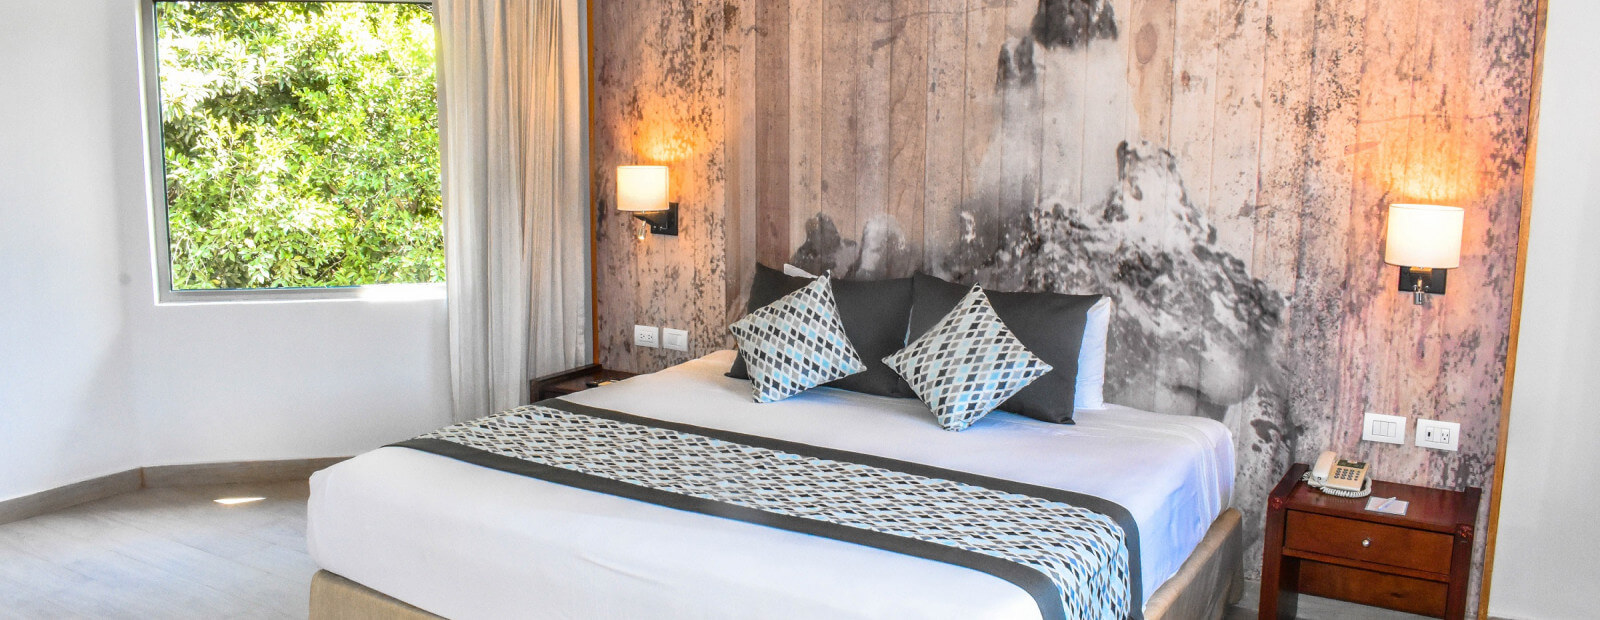 Signature Eco Collection rooms